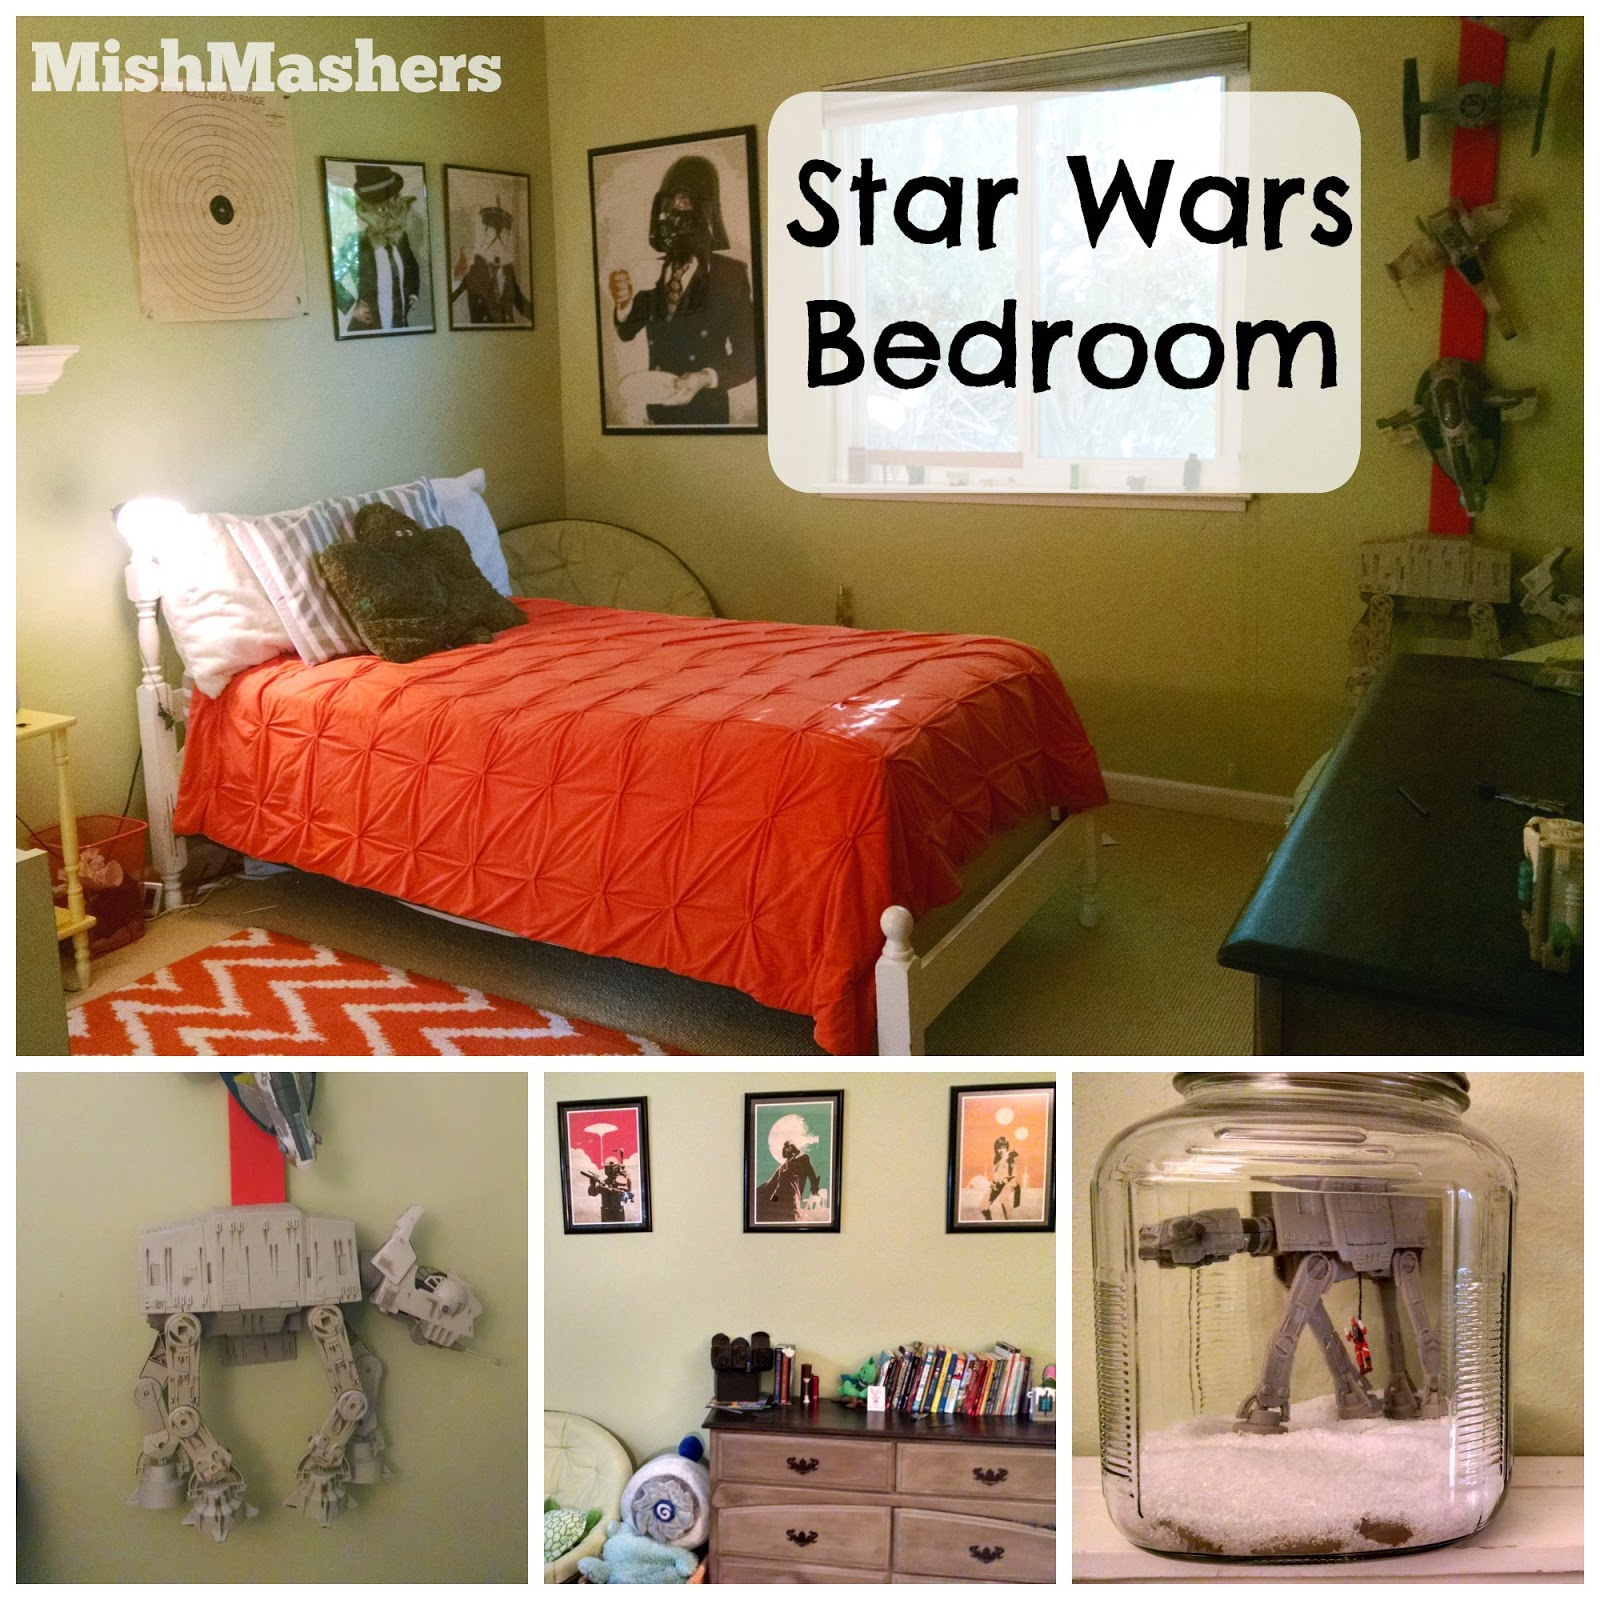 Star Wars Themed Bedroom Ideas Mishmashers Star Wars Bedroom